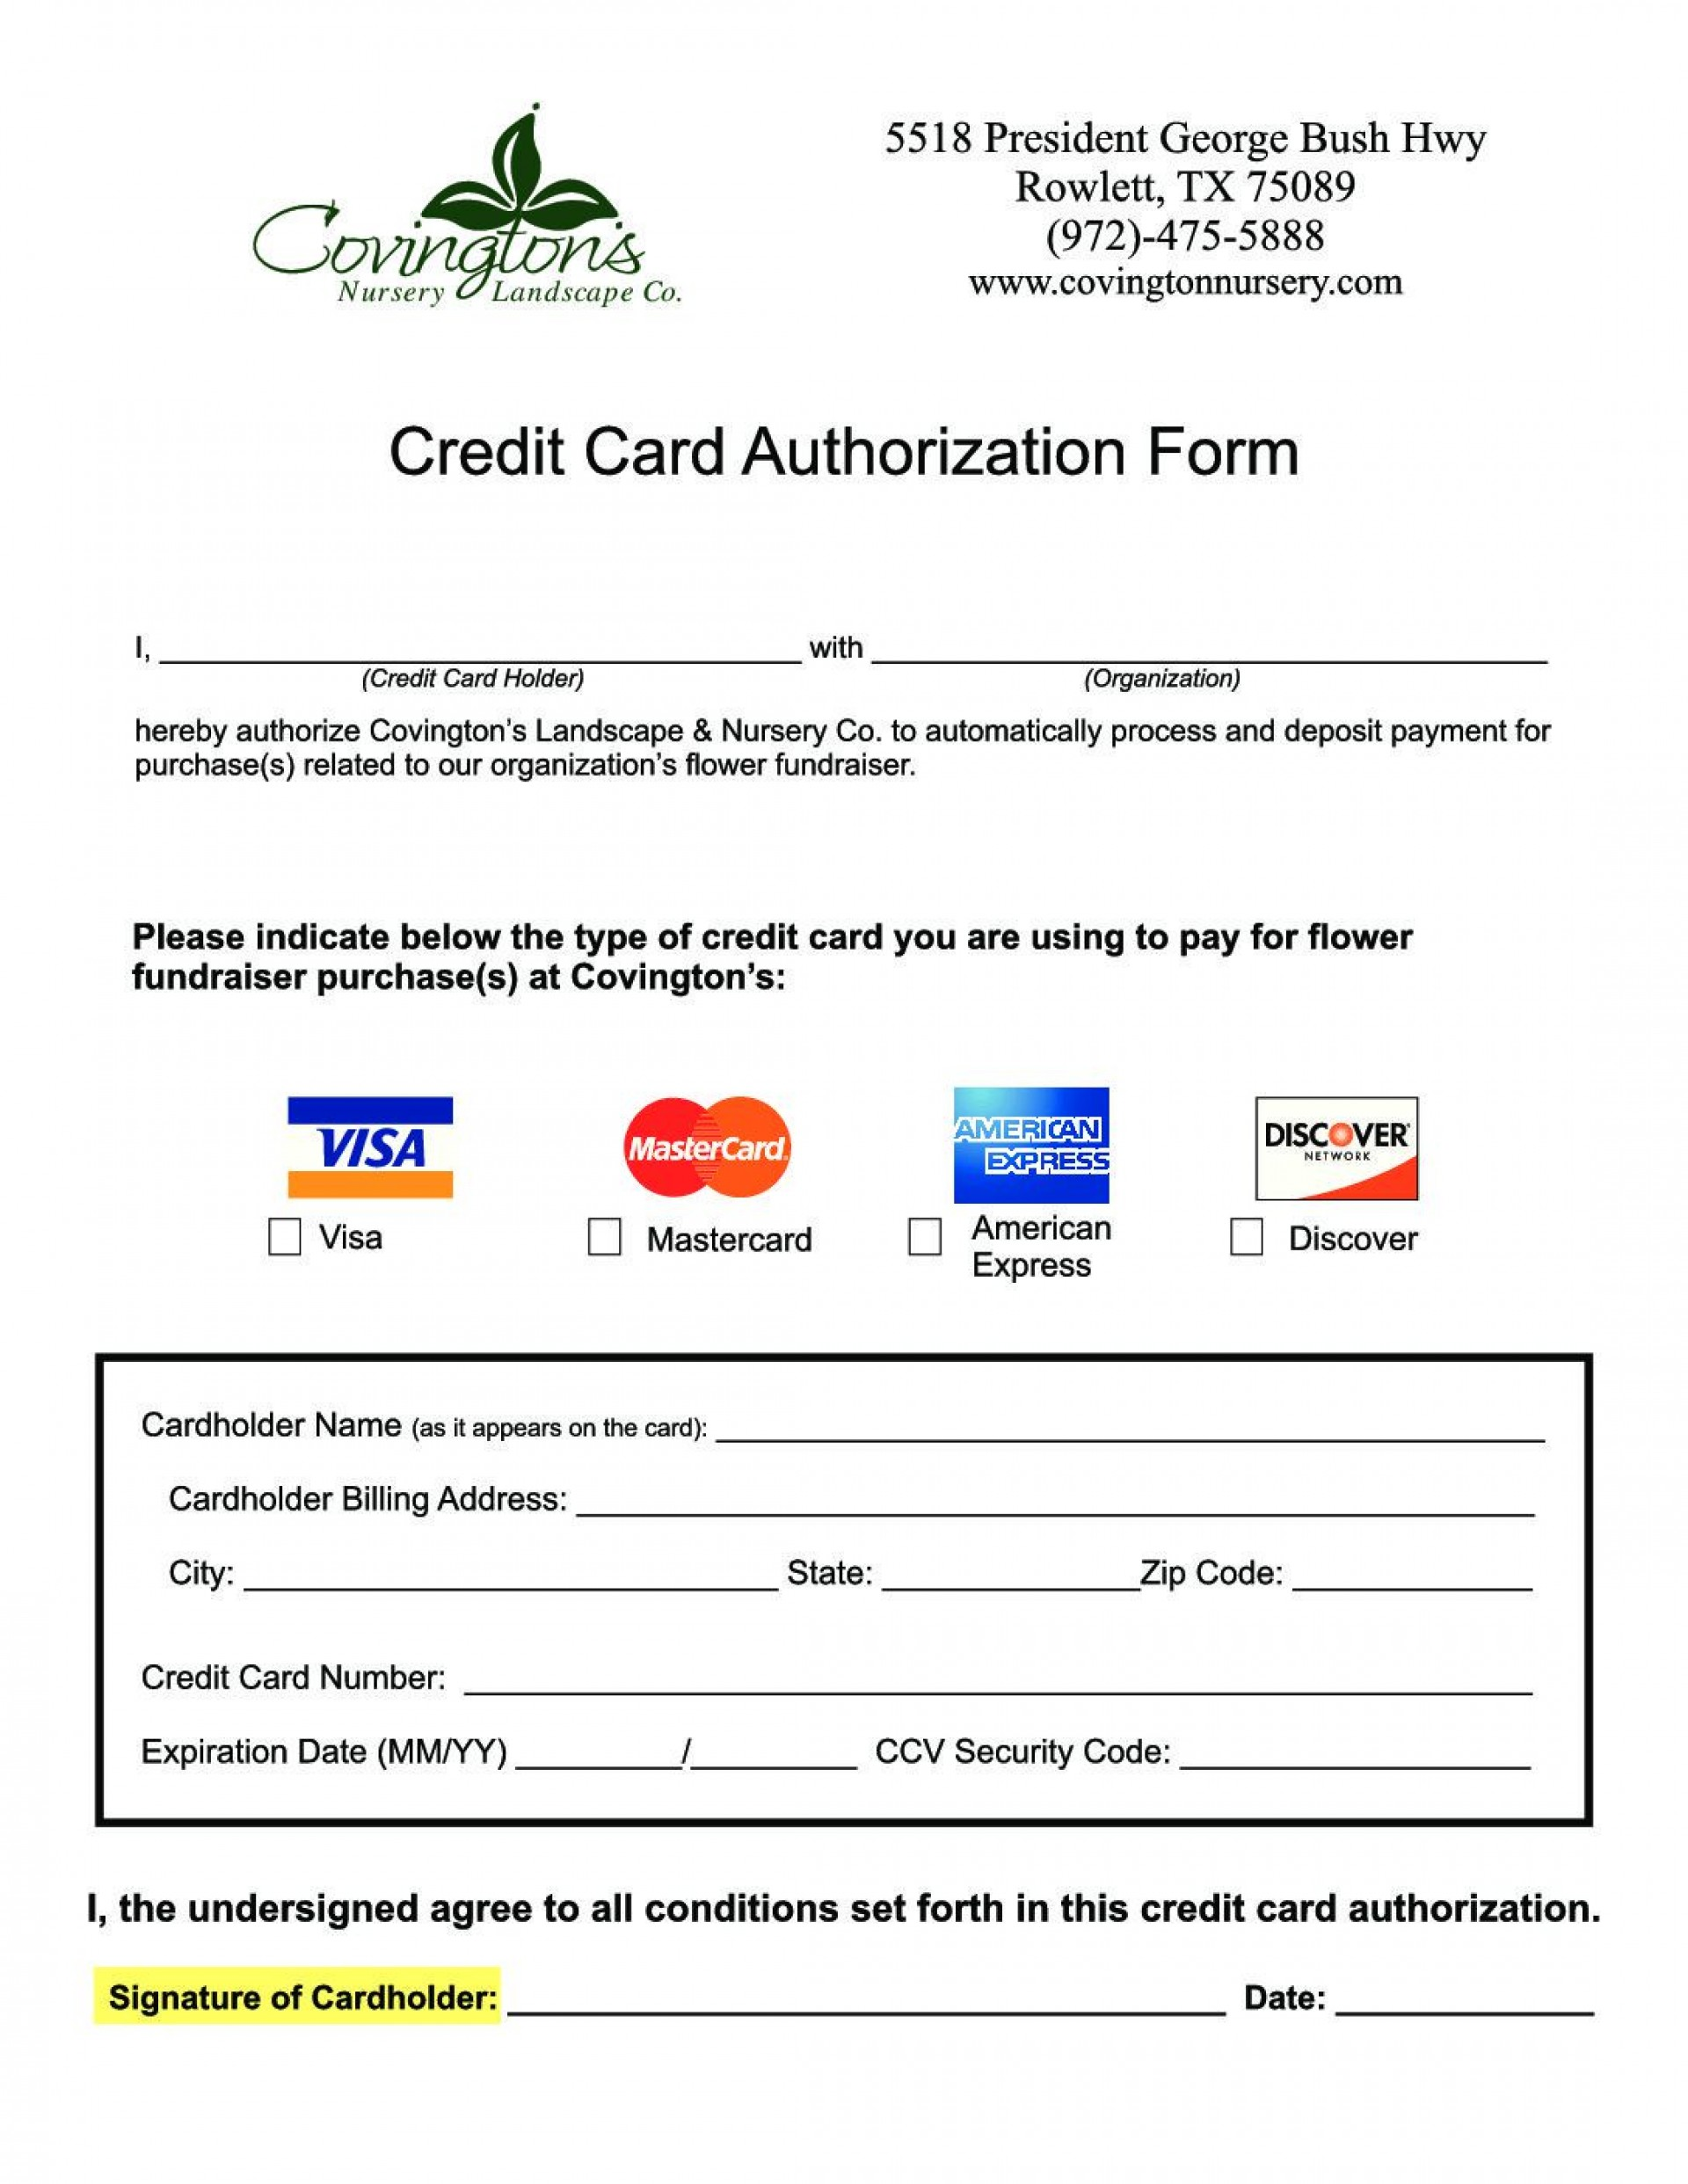 008 Marvelou Credit Card Authorization Template Photo  Form For Travel Agency Free Download Google Doc1920